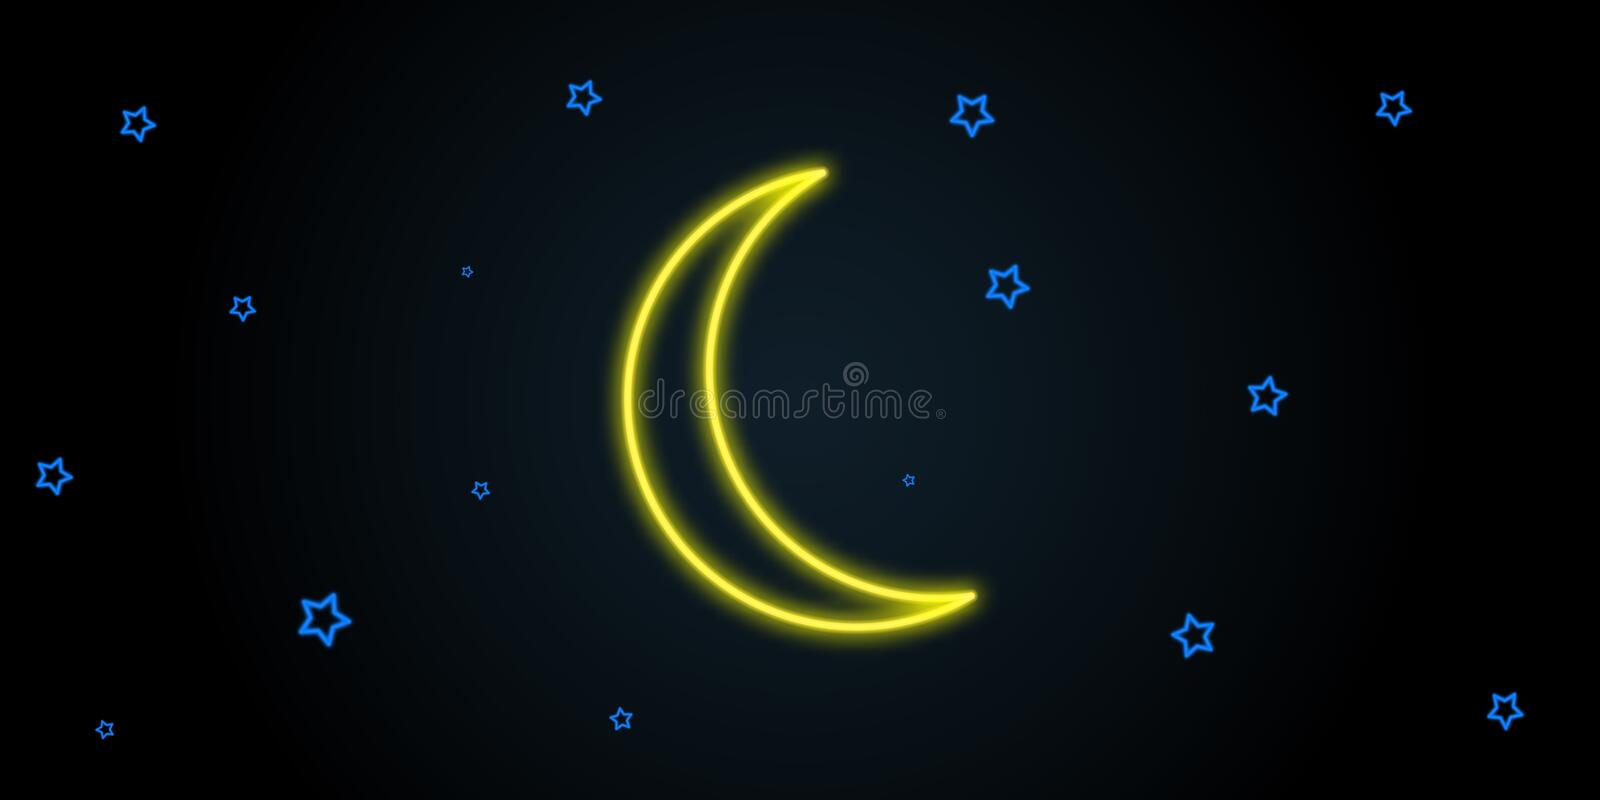 Neon stars purple light black moon illustration. Element of neon background vector illustration